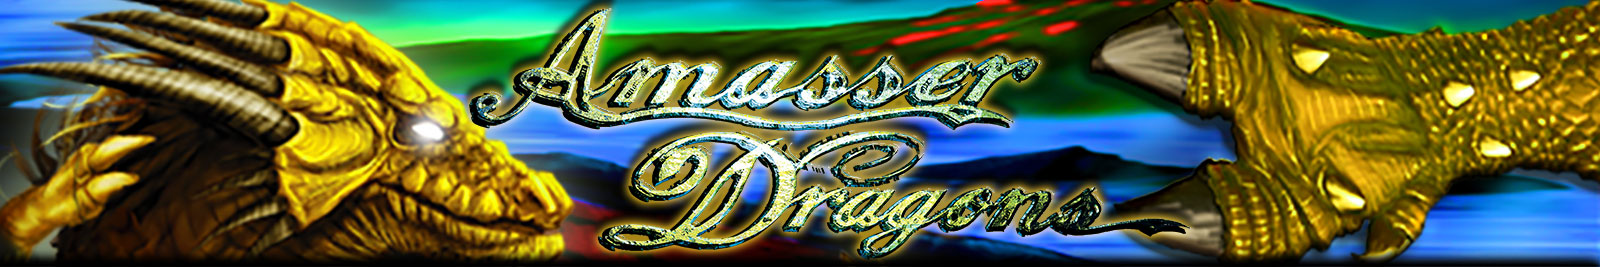 Amasser Dragons Fantasy Adventure RPG Game